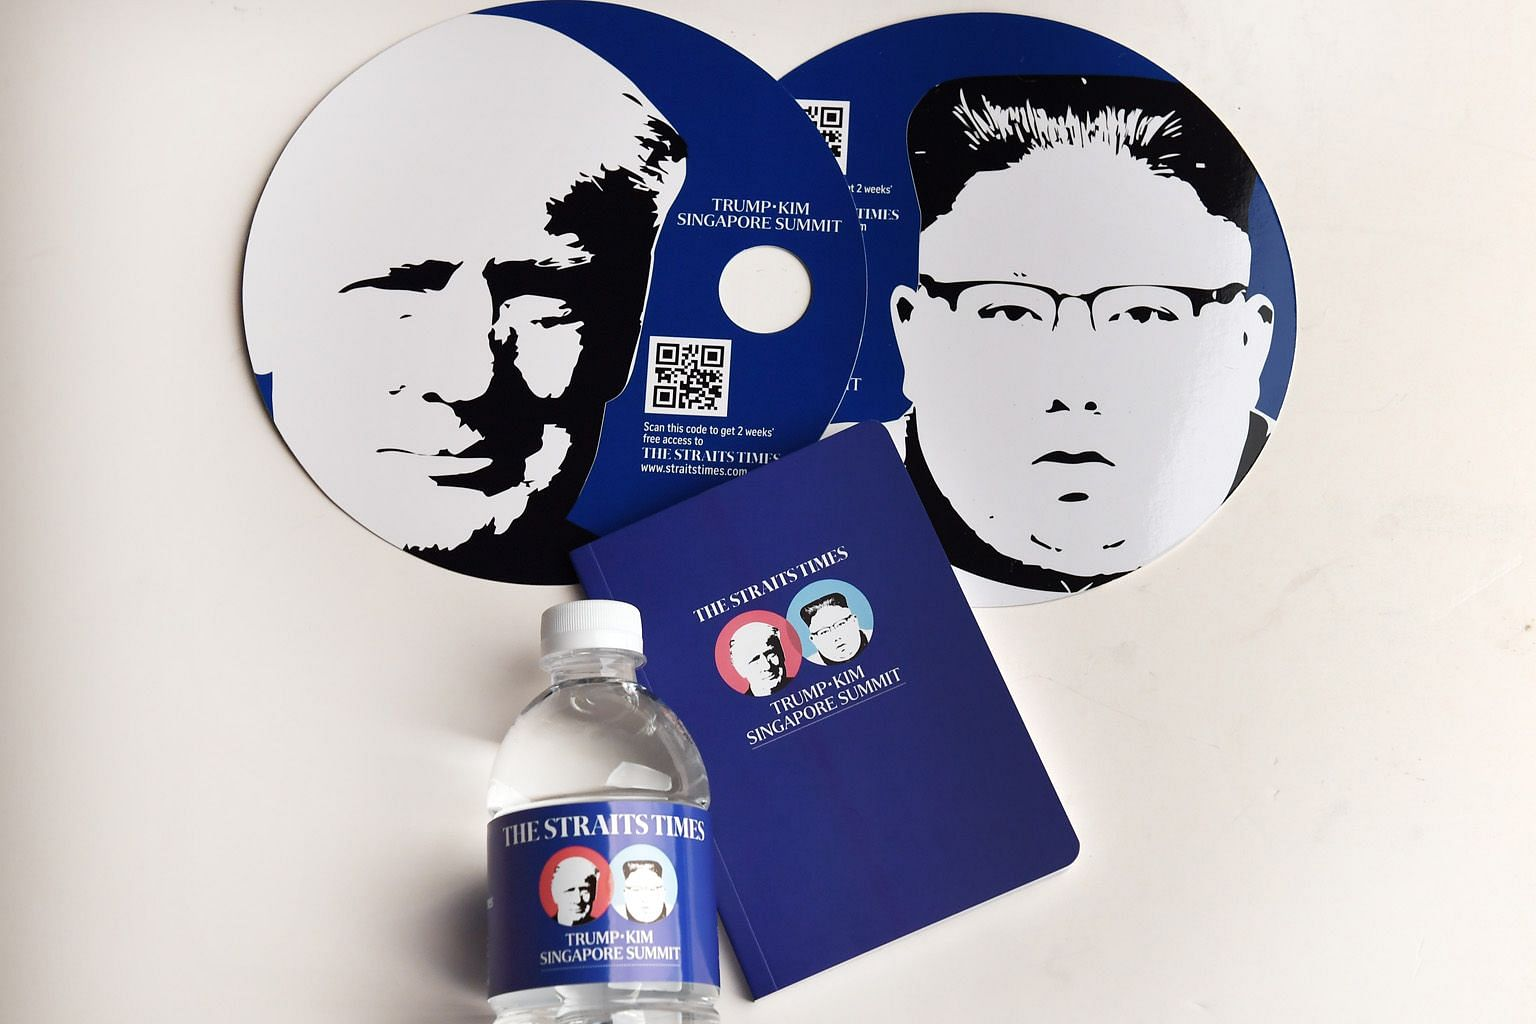 The Straits Times produced customised items, such as a fan, a notebook and bottled water, for the summit.